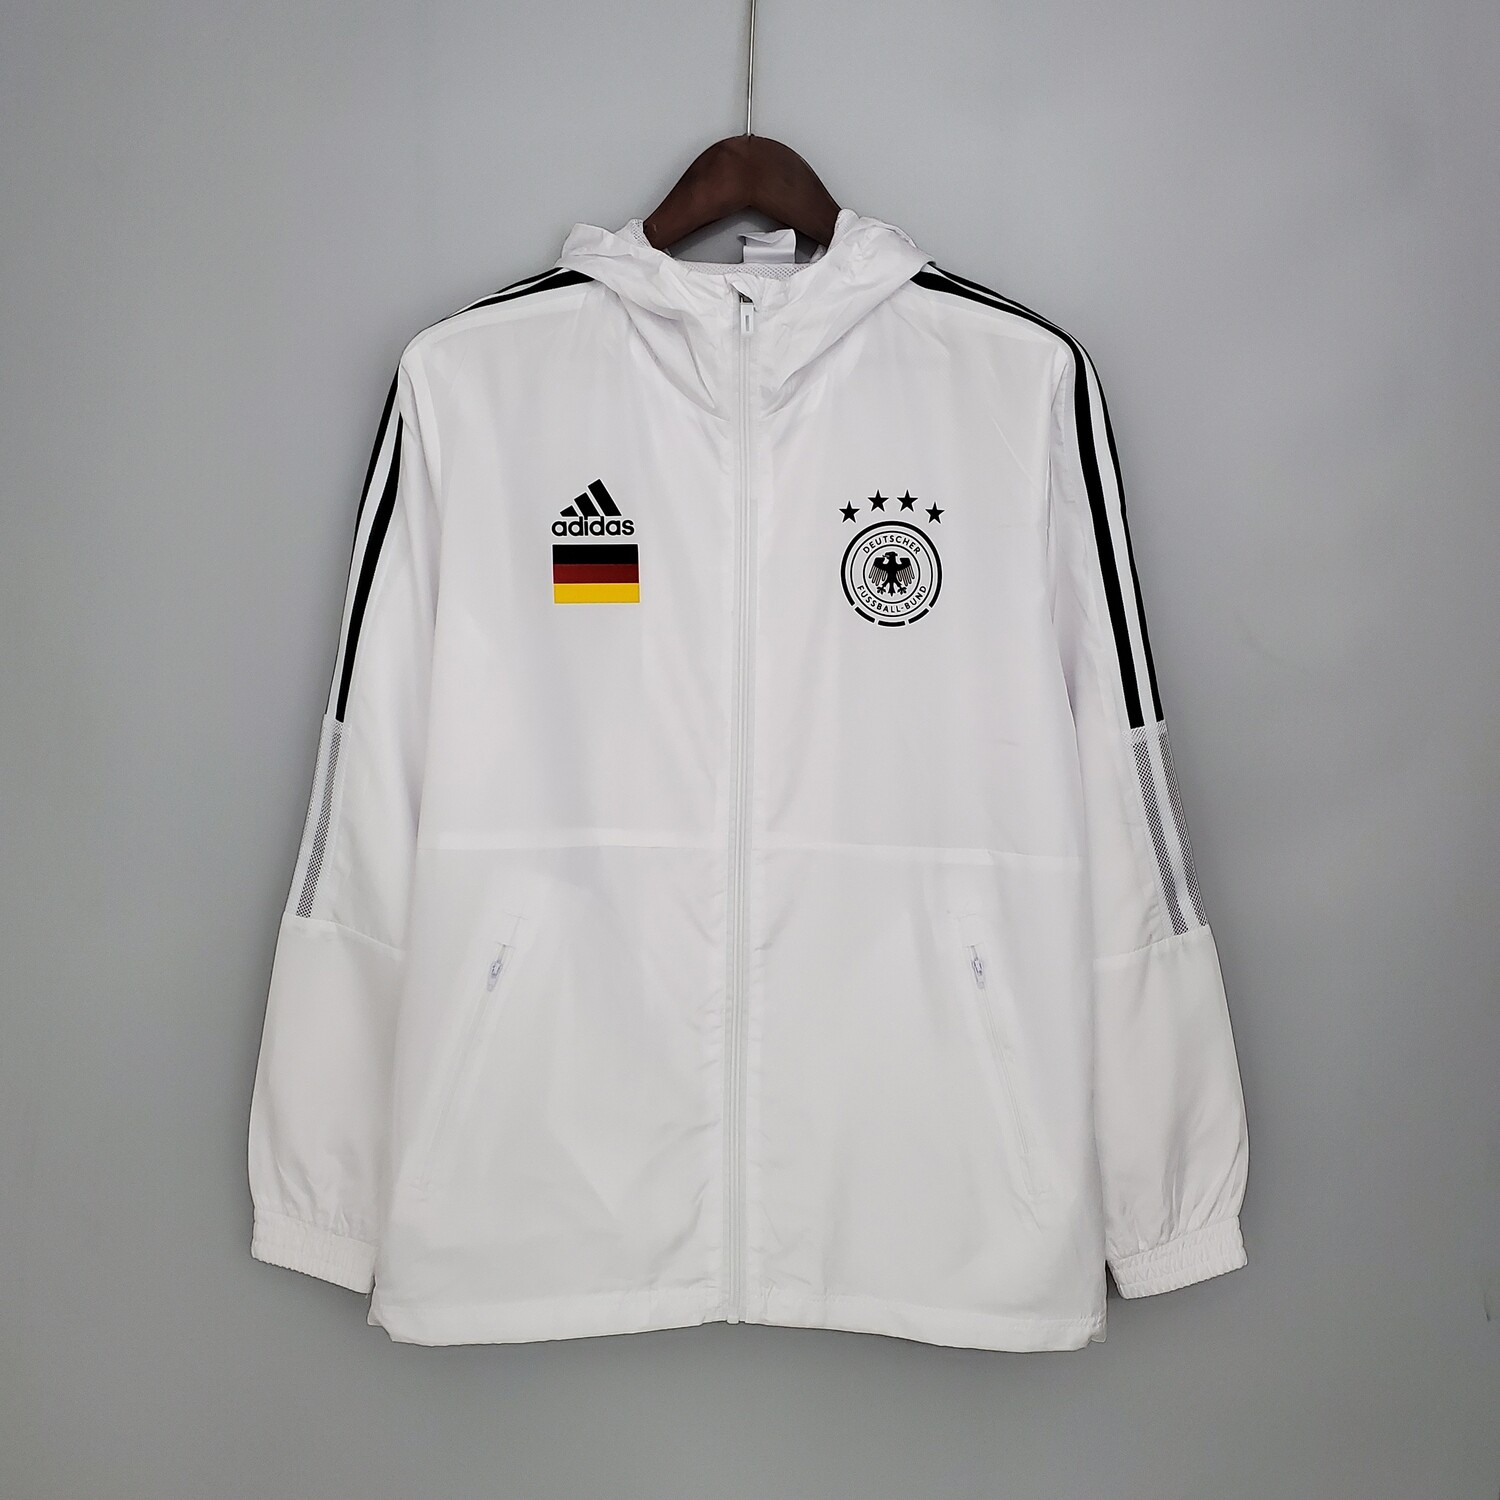 Germany White Windbreaker 2021-22 [Pre-paid Only]